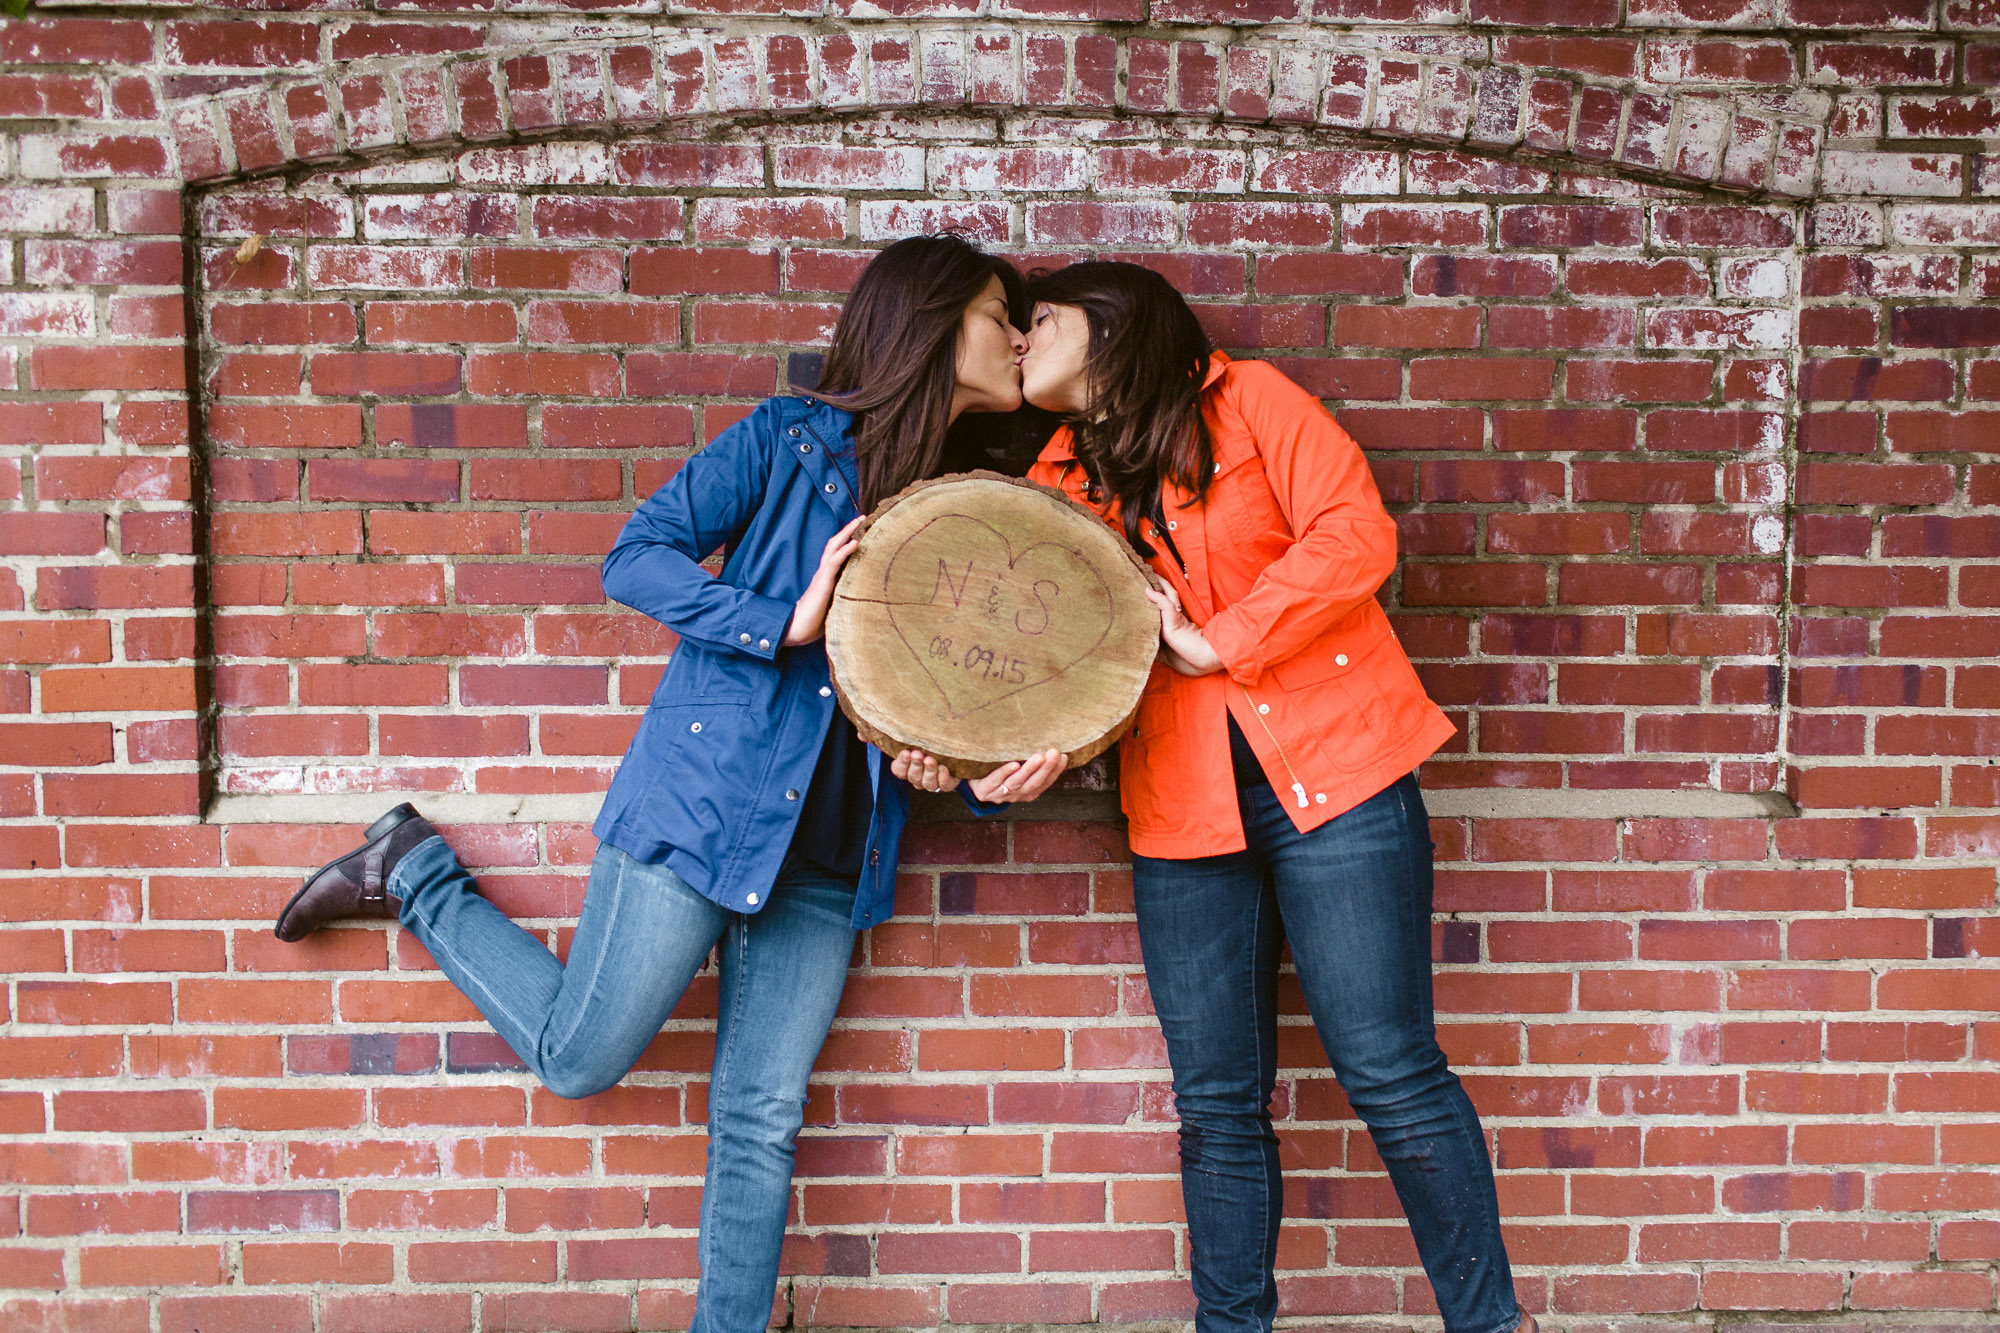 Two young women with long brown hair kissing in front of a brick wall, holding a piece of wood with a heart carved on it.